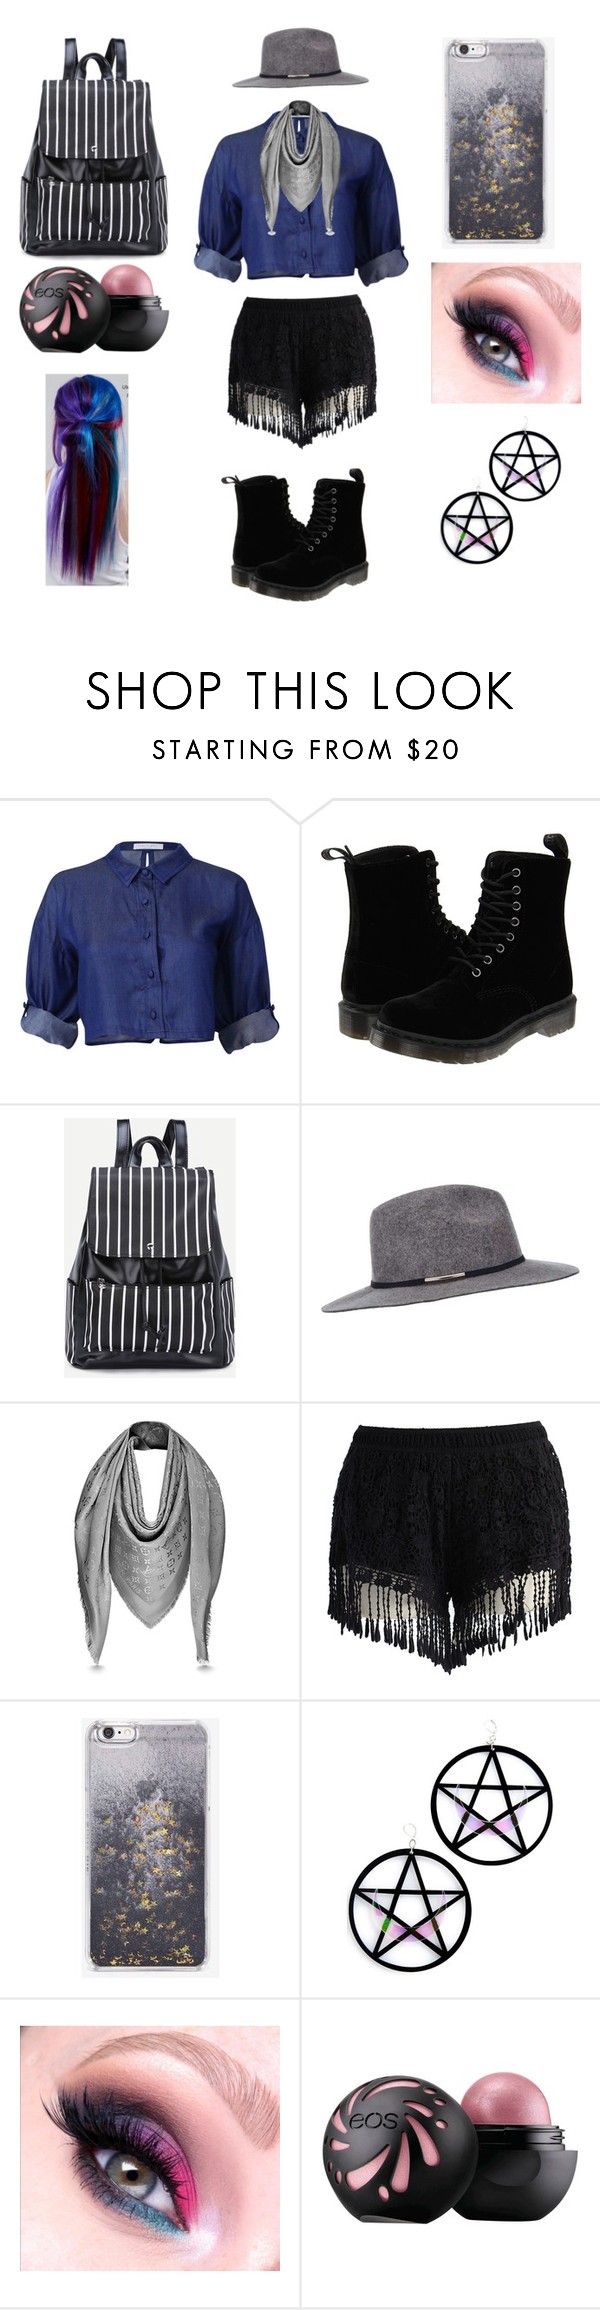 """First day of senior year"" by fabulantastic ❤ liked on Polyvore featuring Dr. Martens, Miss Selfridge, Chicwish, Skinnydip, Marina Fini and Manic Panic NYC"